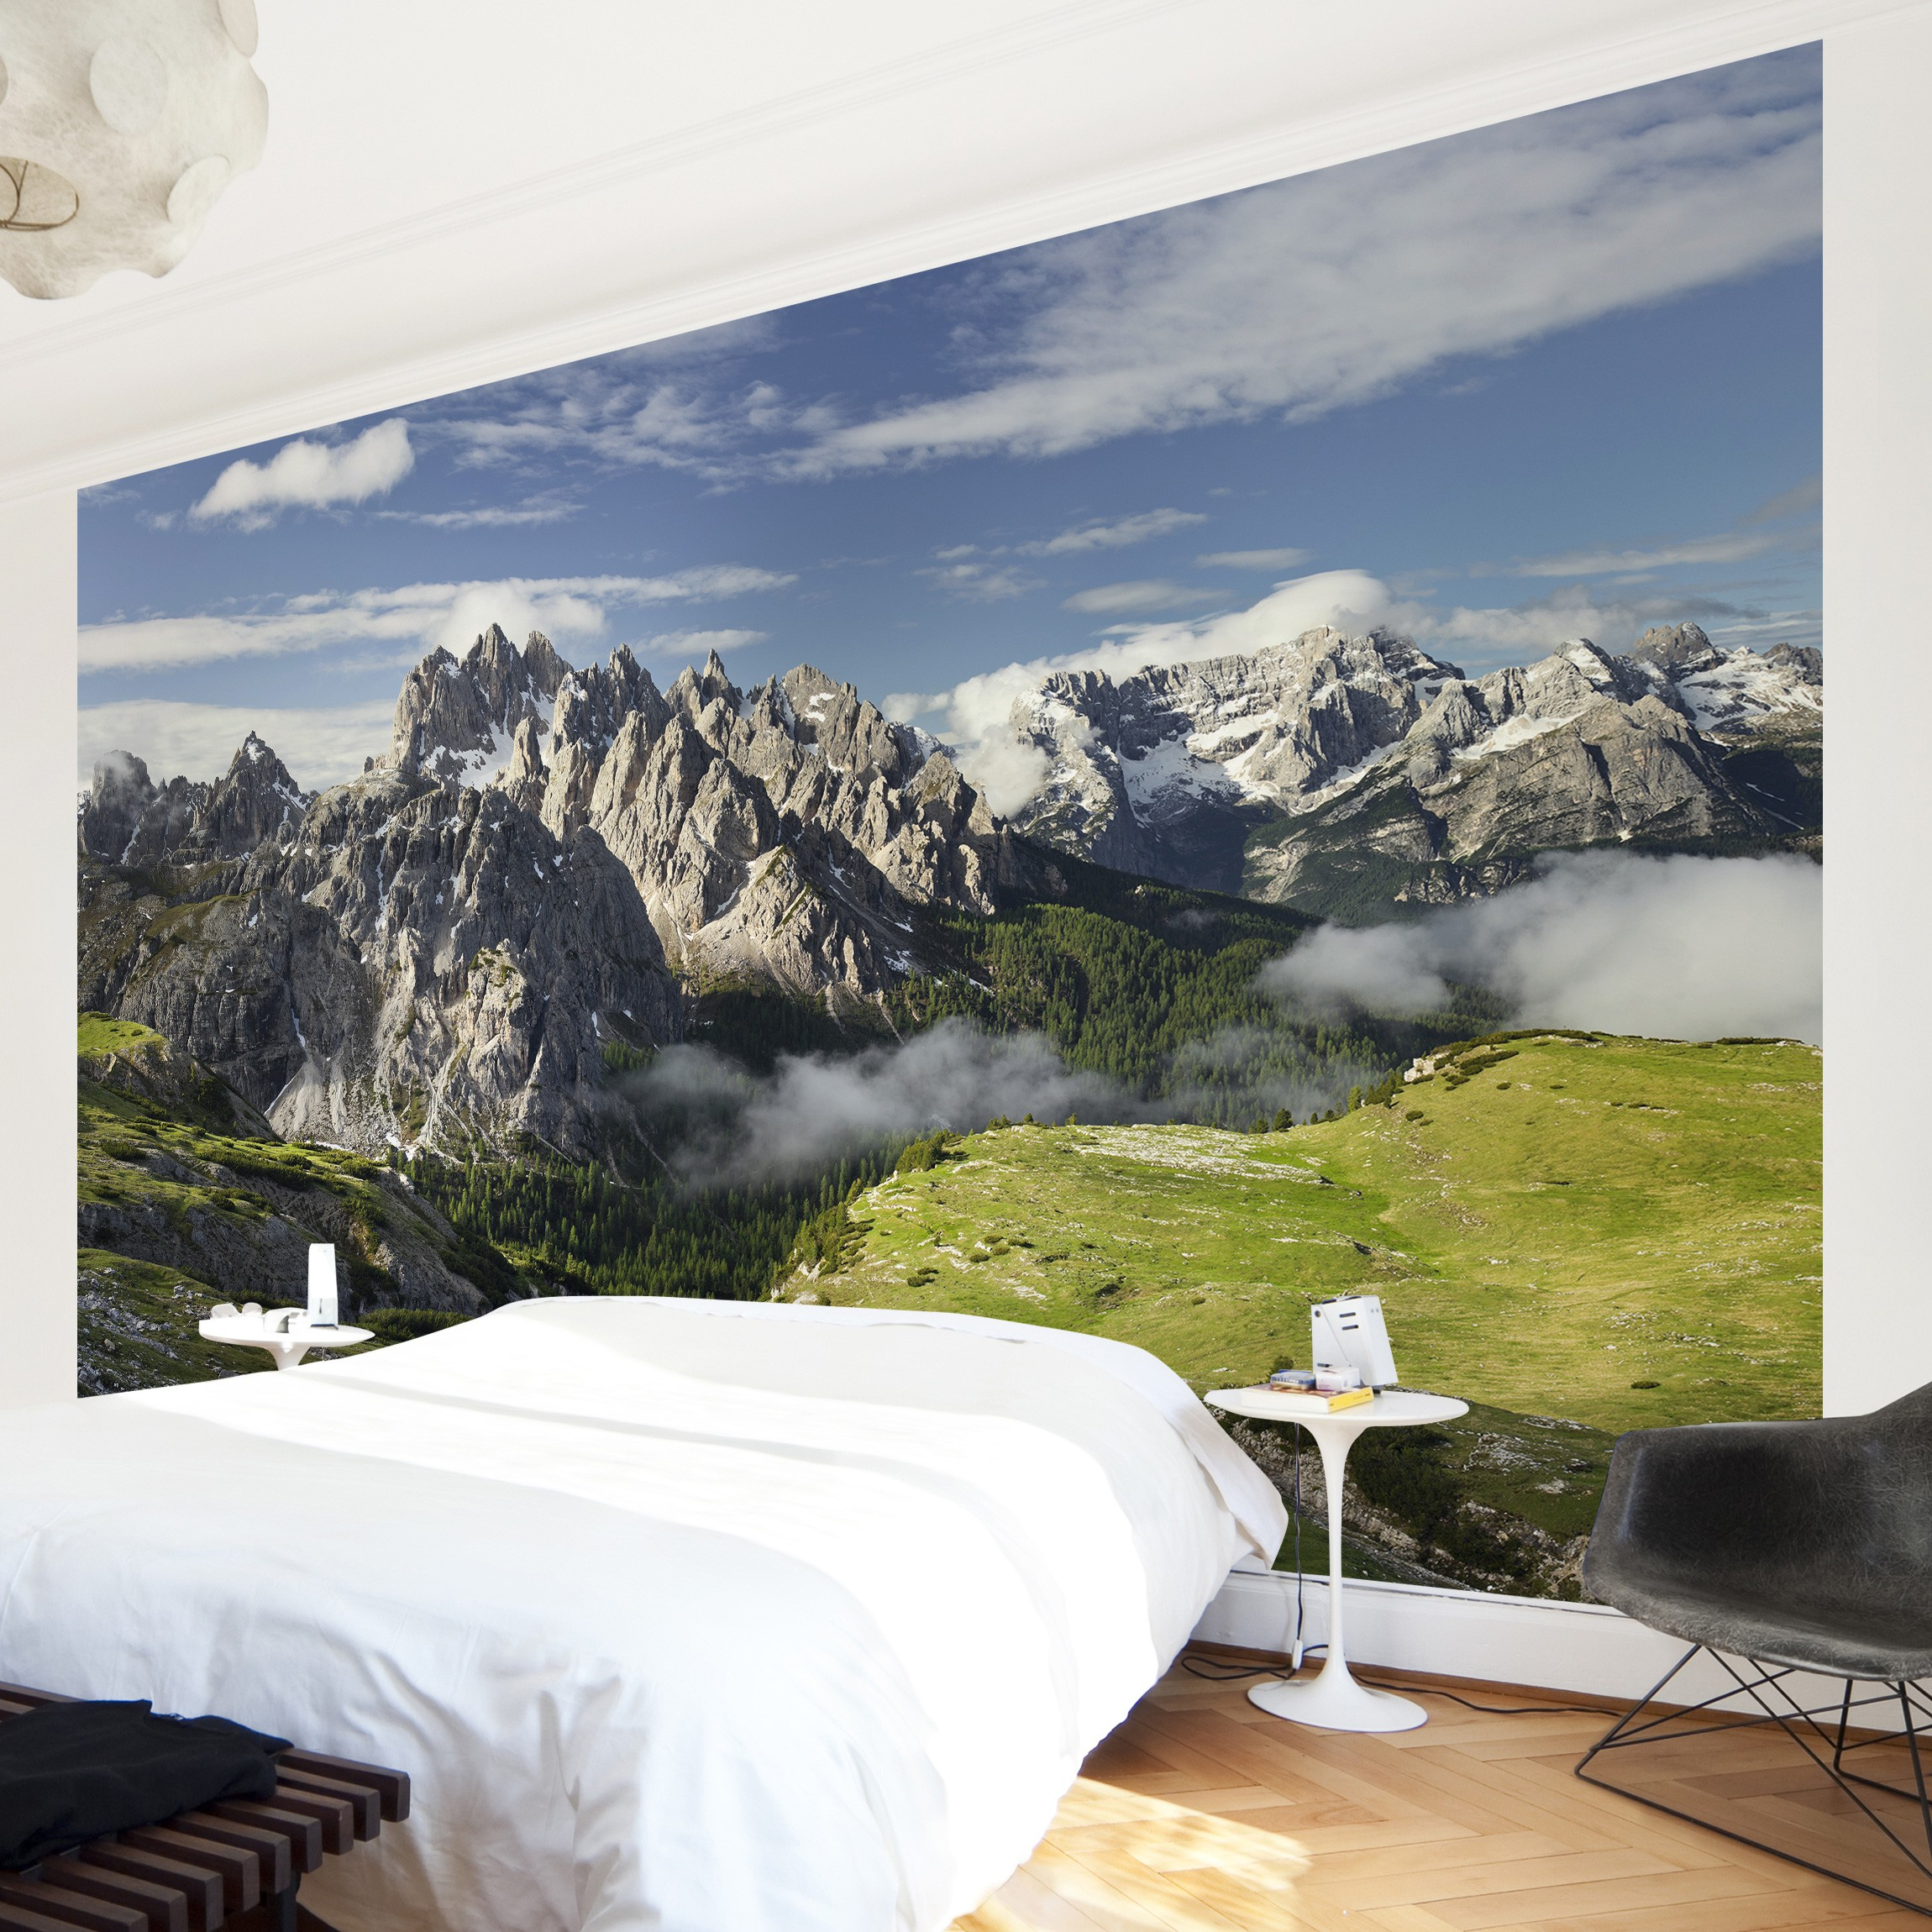 fototapete berge selbstklebend italienische alpen. Black Bedroom Furniture Sets. Home Design Ideas